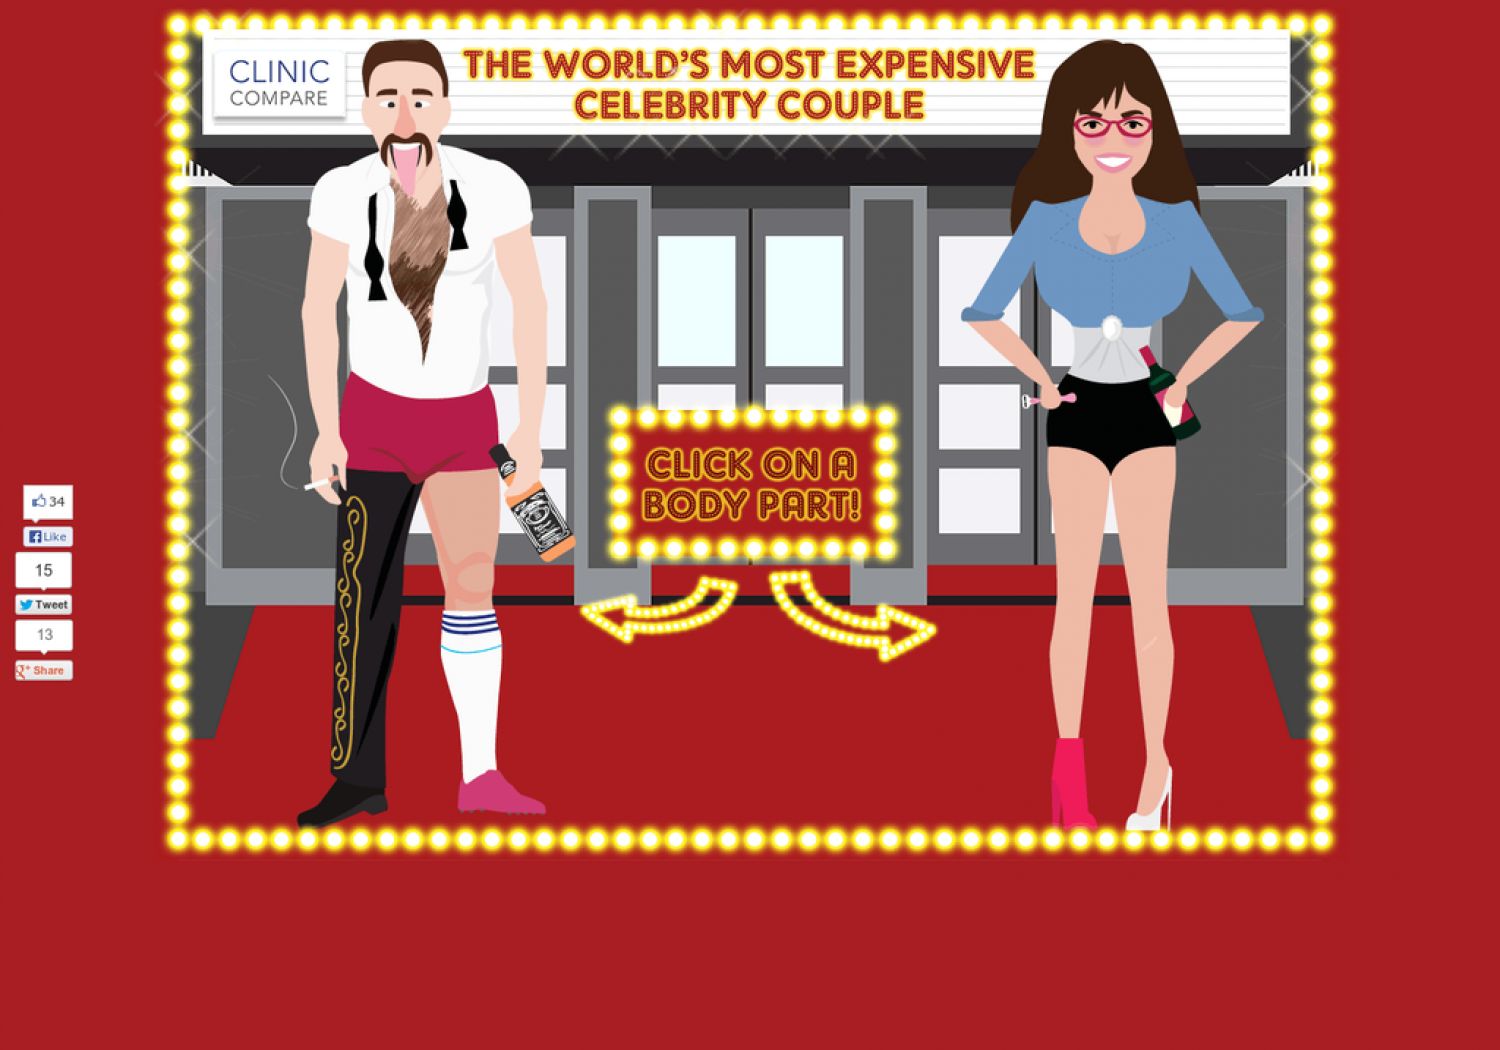 The World's Most Expensive Celebrity Couple Infographic